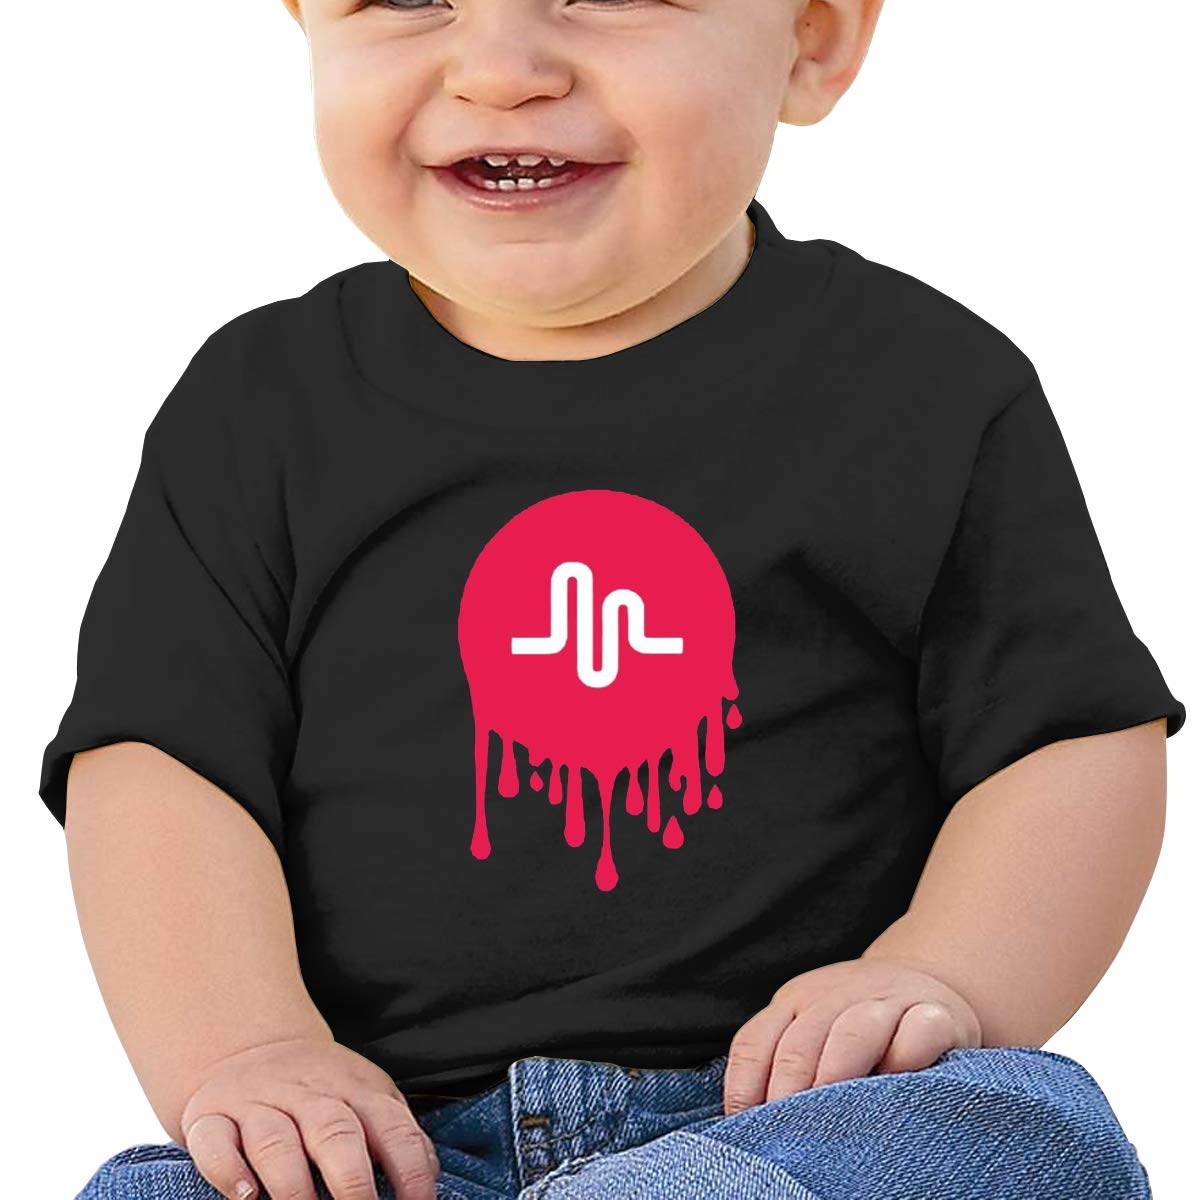 DONGLY 6-24 Month Baby T-Shirt Musically Nordic Winter Personality Wild Black